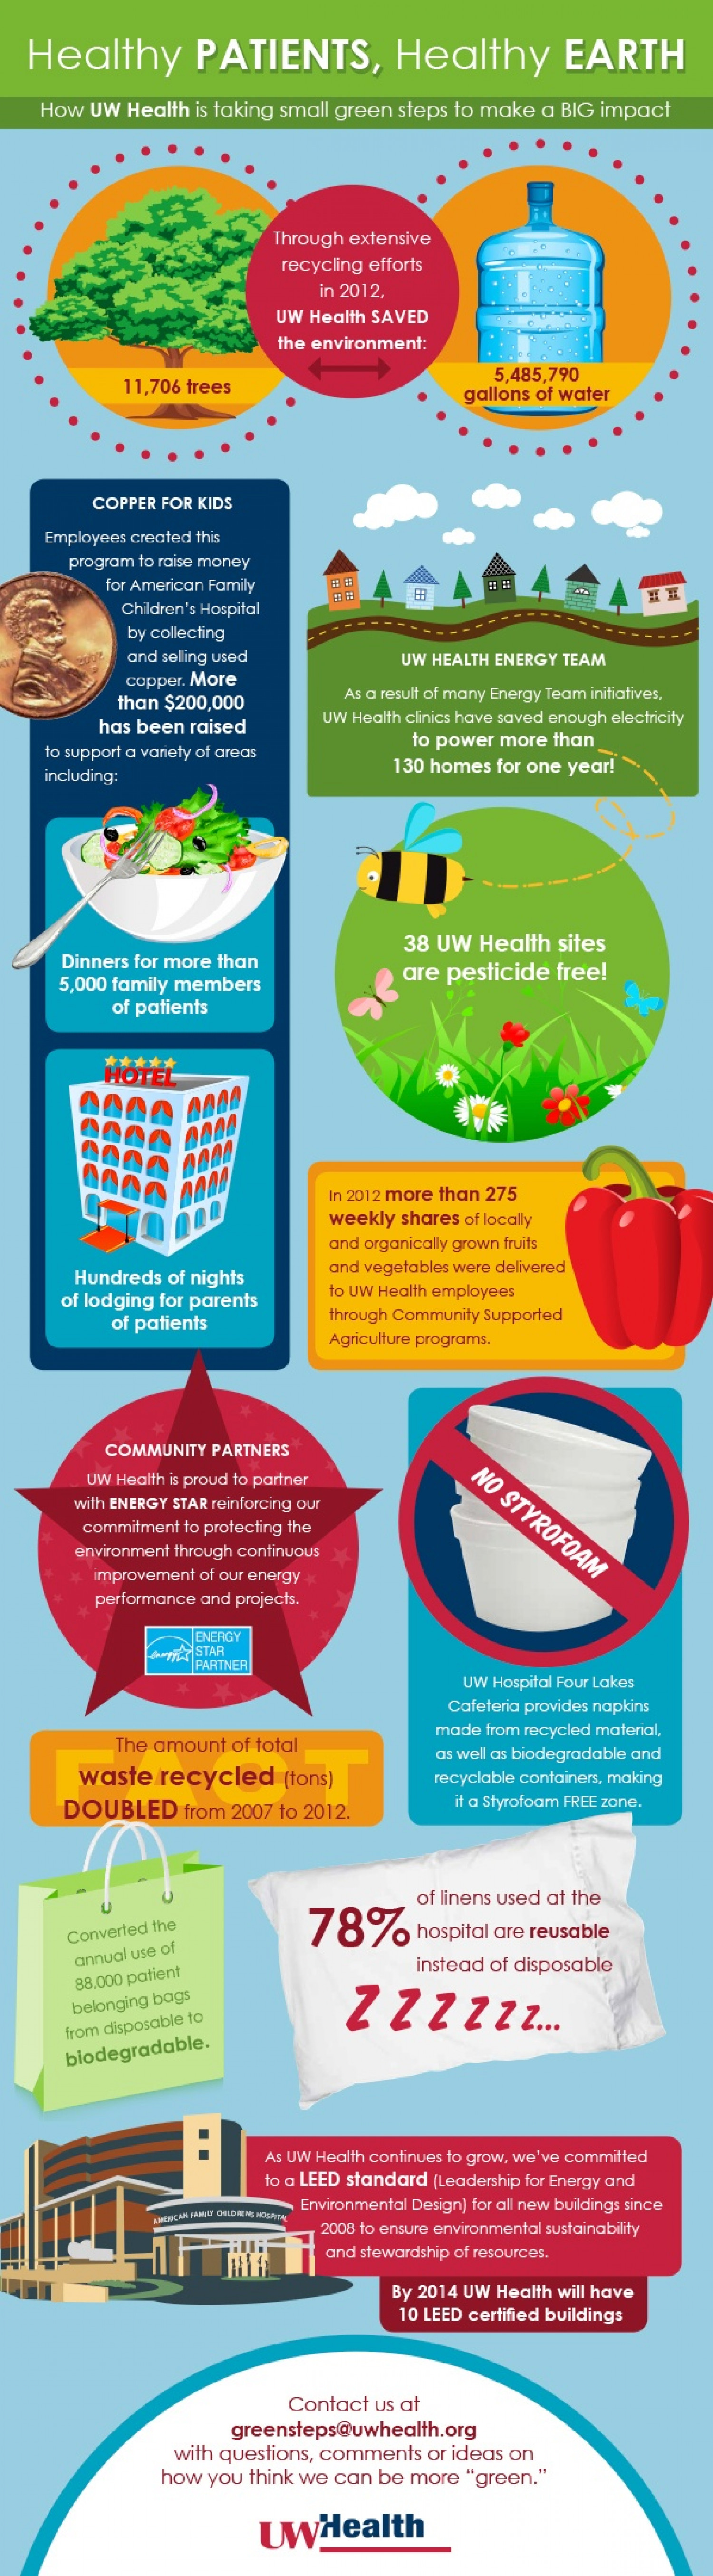 UW Health Green Steps to a Healthy Environment Infographic